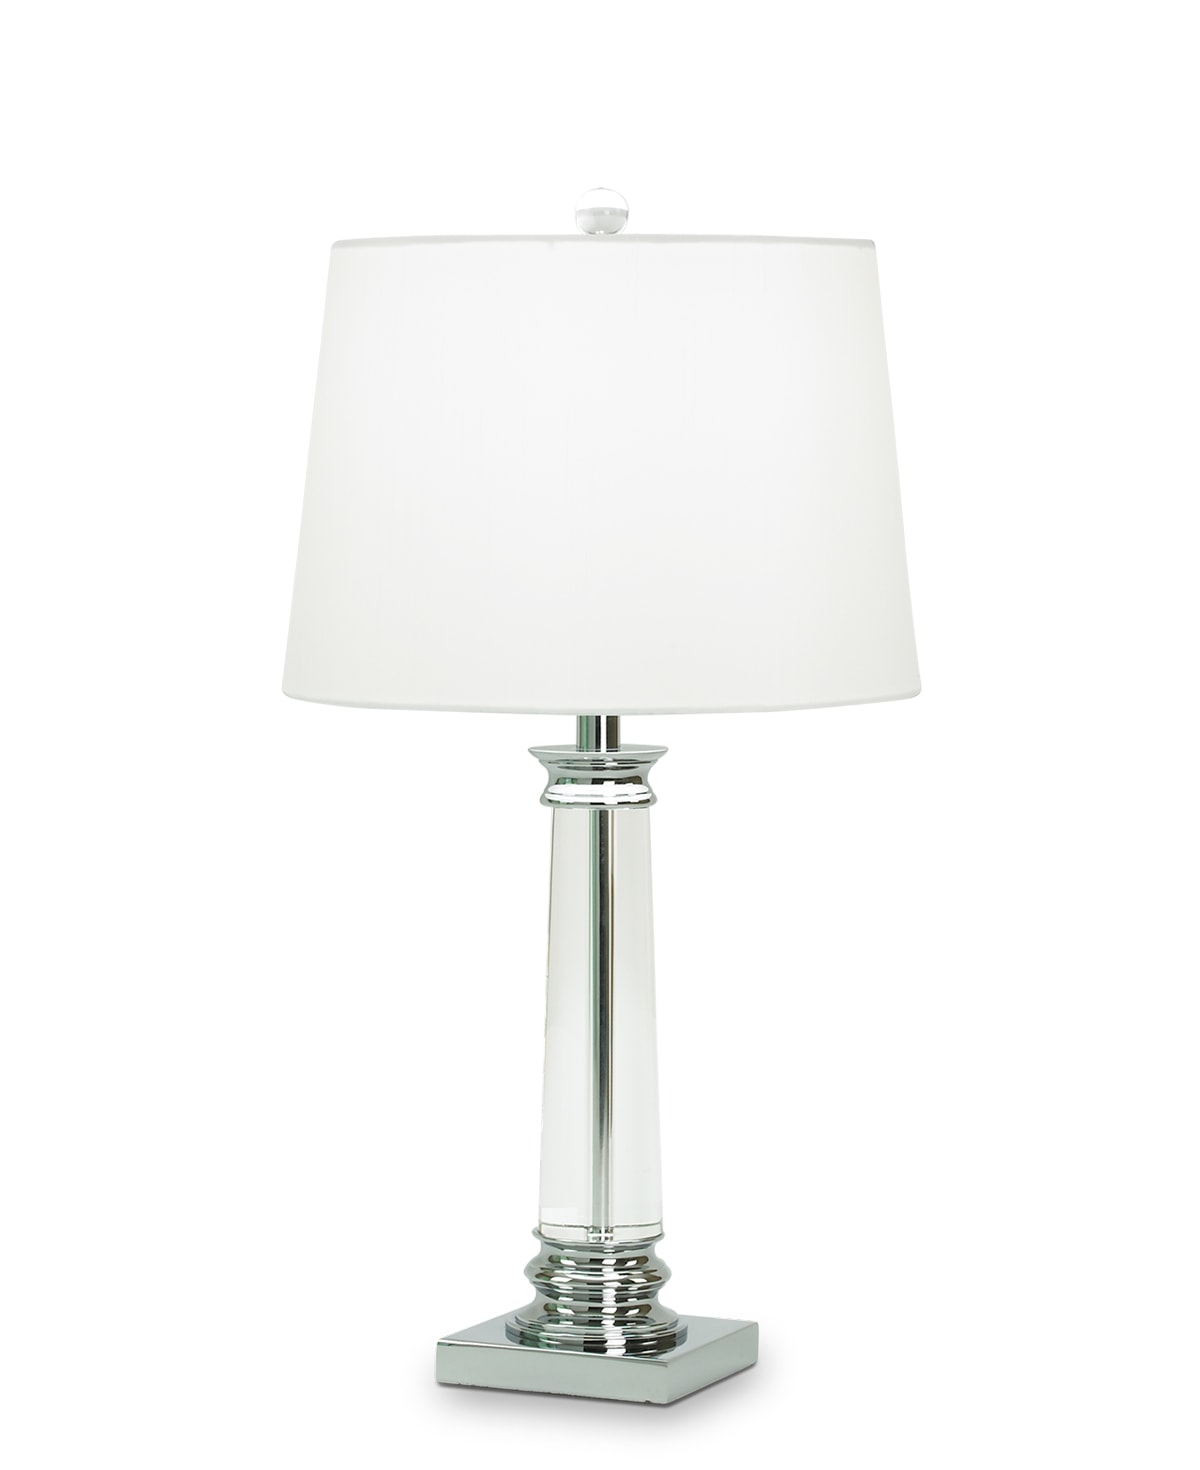 FlowDecor Coleford Table Lamp in crystal and metal with chrome finish and white linen tapered drum shade (# 3133)